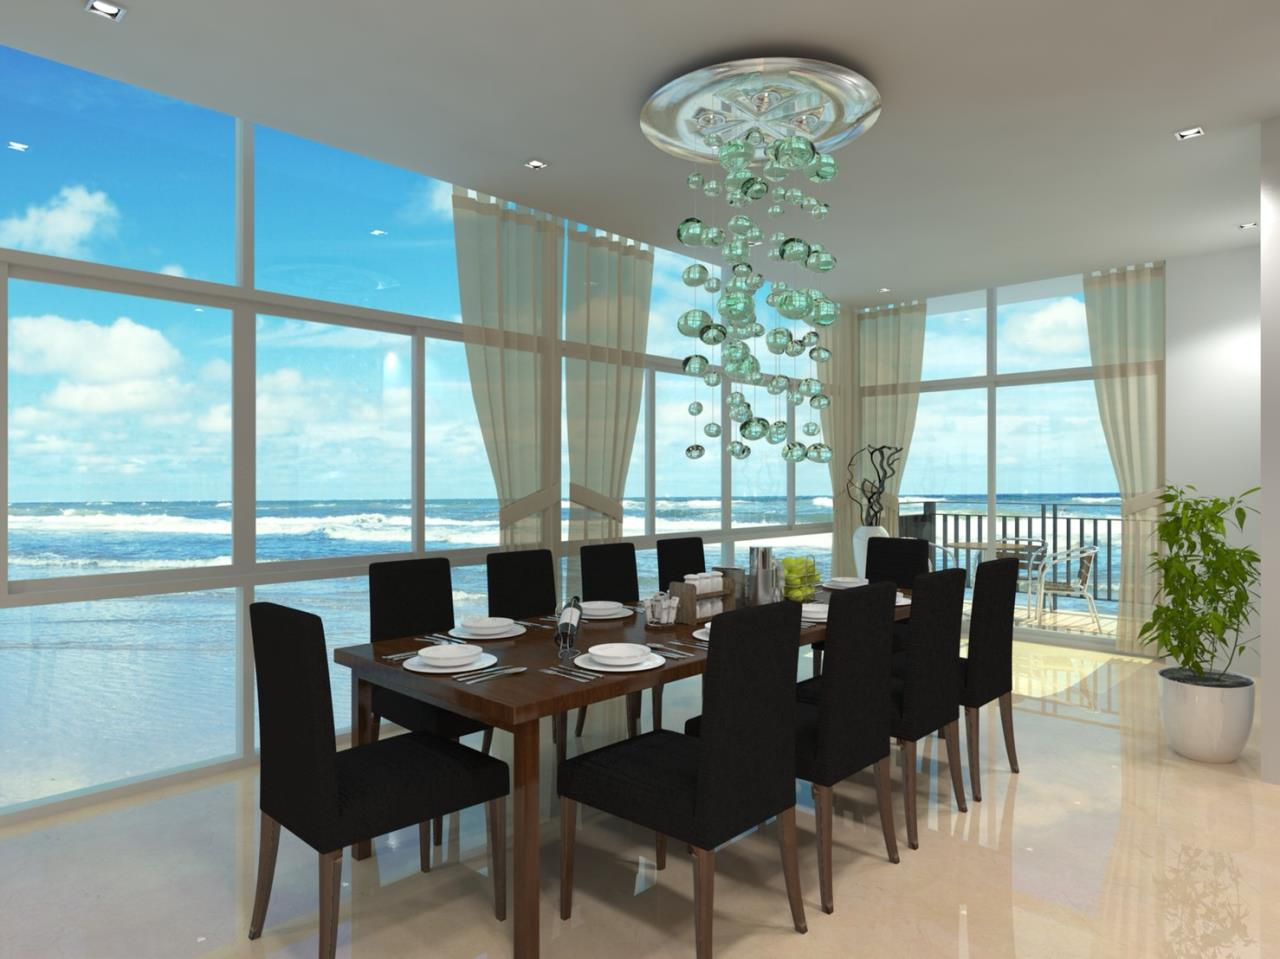 Signature Realty ( Thailand ) Co Ltd Agency's Furnished 2bedroom 65.75 sq.m condo with jacuzzi floor 2-11 at The Grand Jomtein Beach Pattaya 32